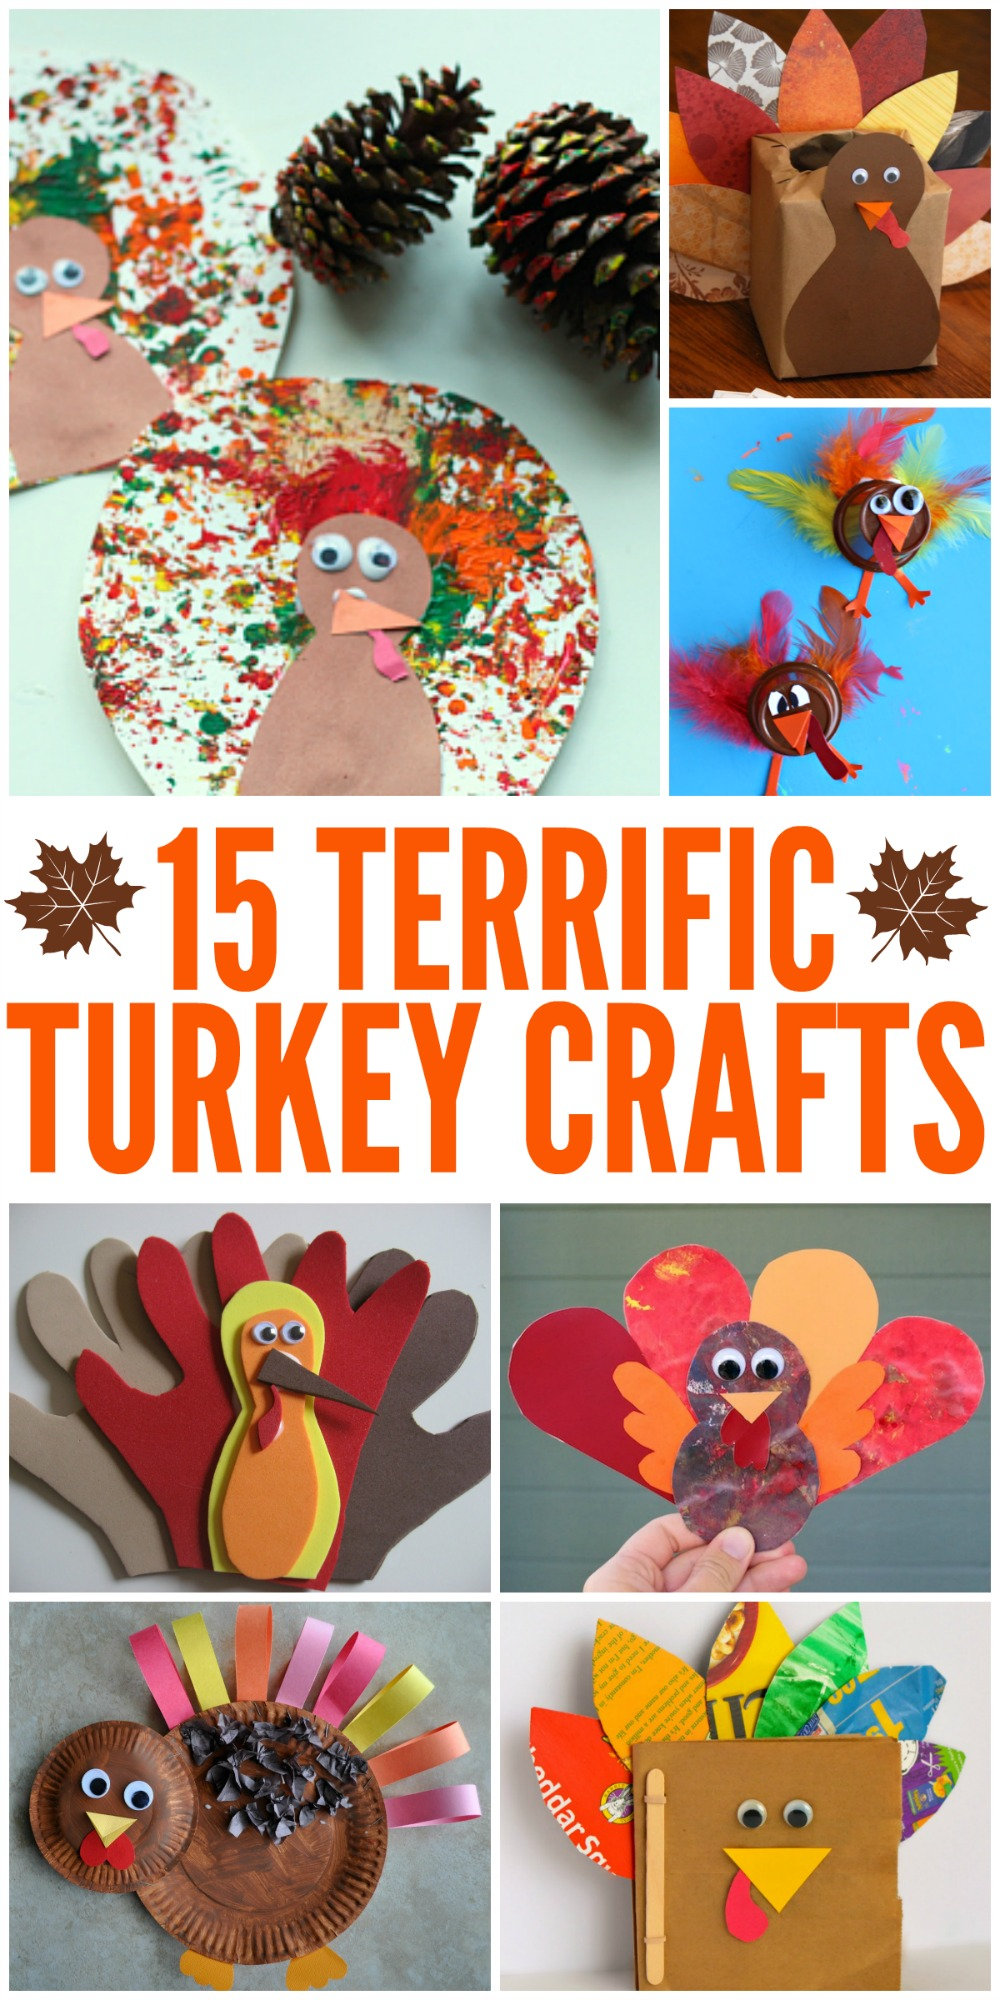 Terrific Turkeys Crafts